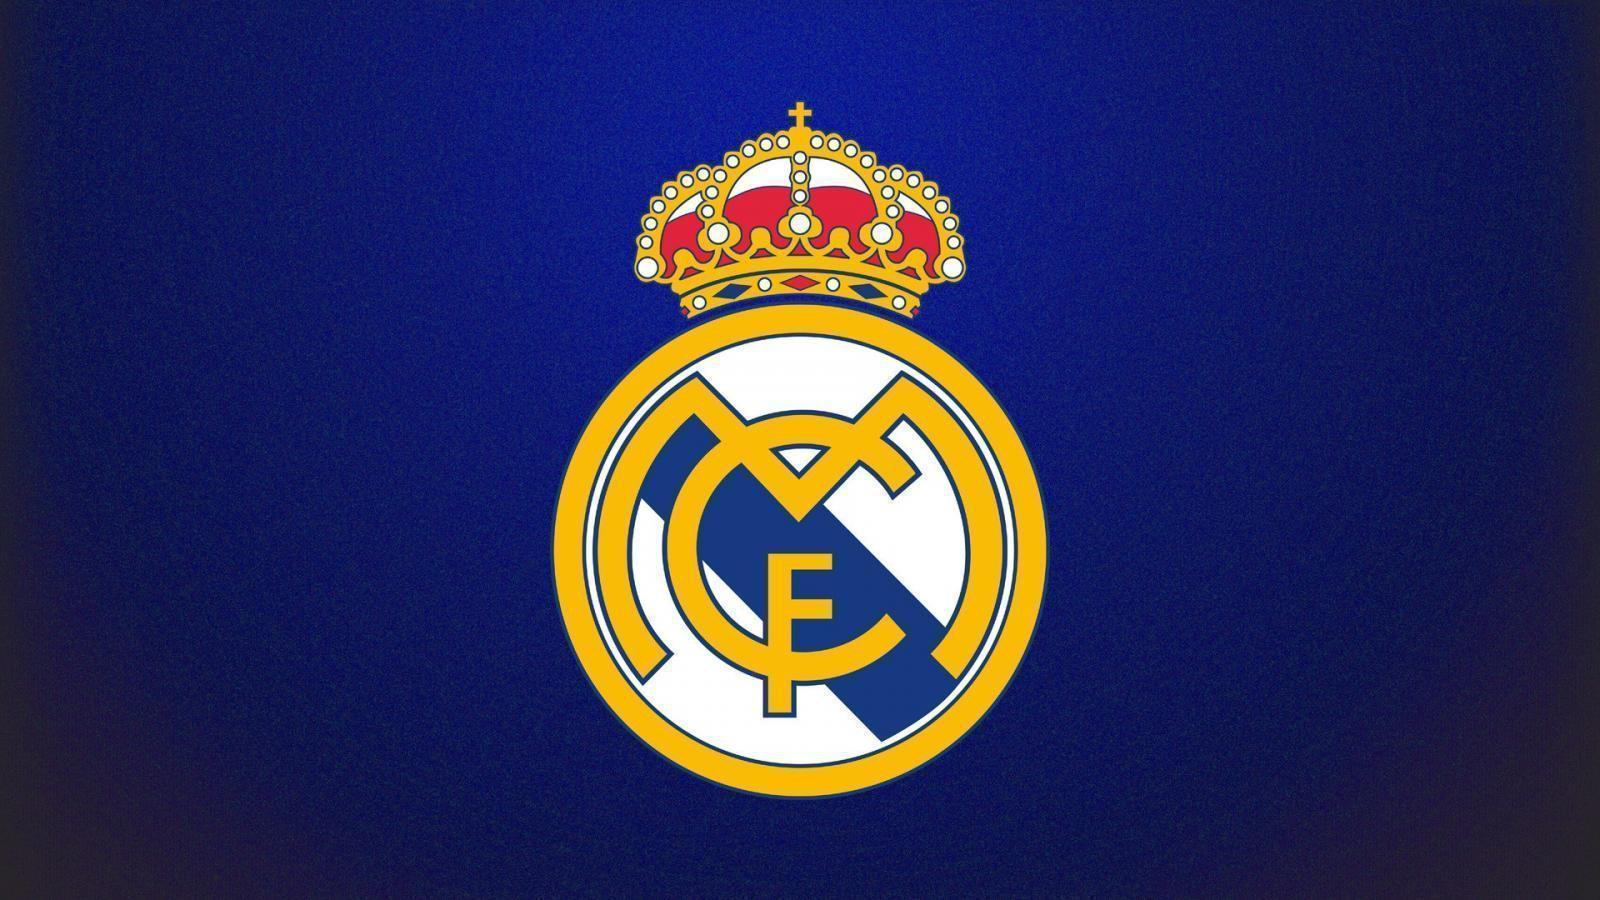 backgrounds real madrid 2017 wallpaper cave On wallpapers real madrid